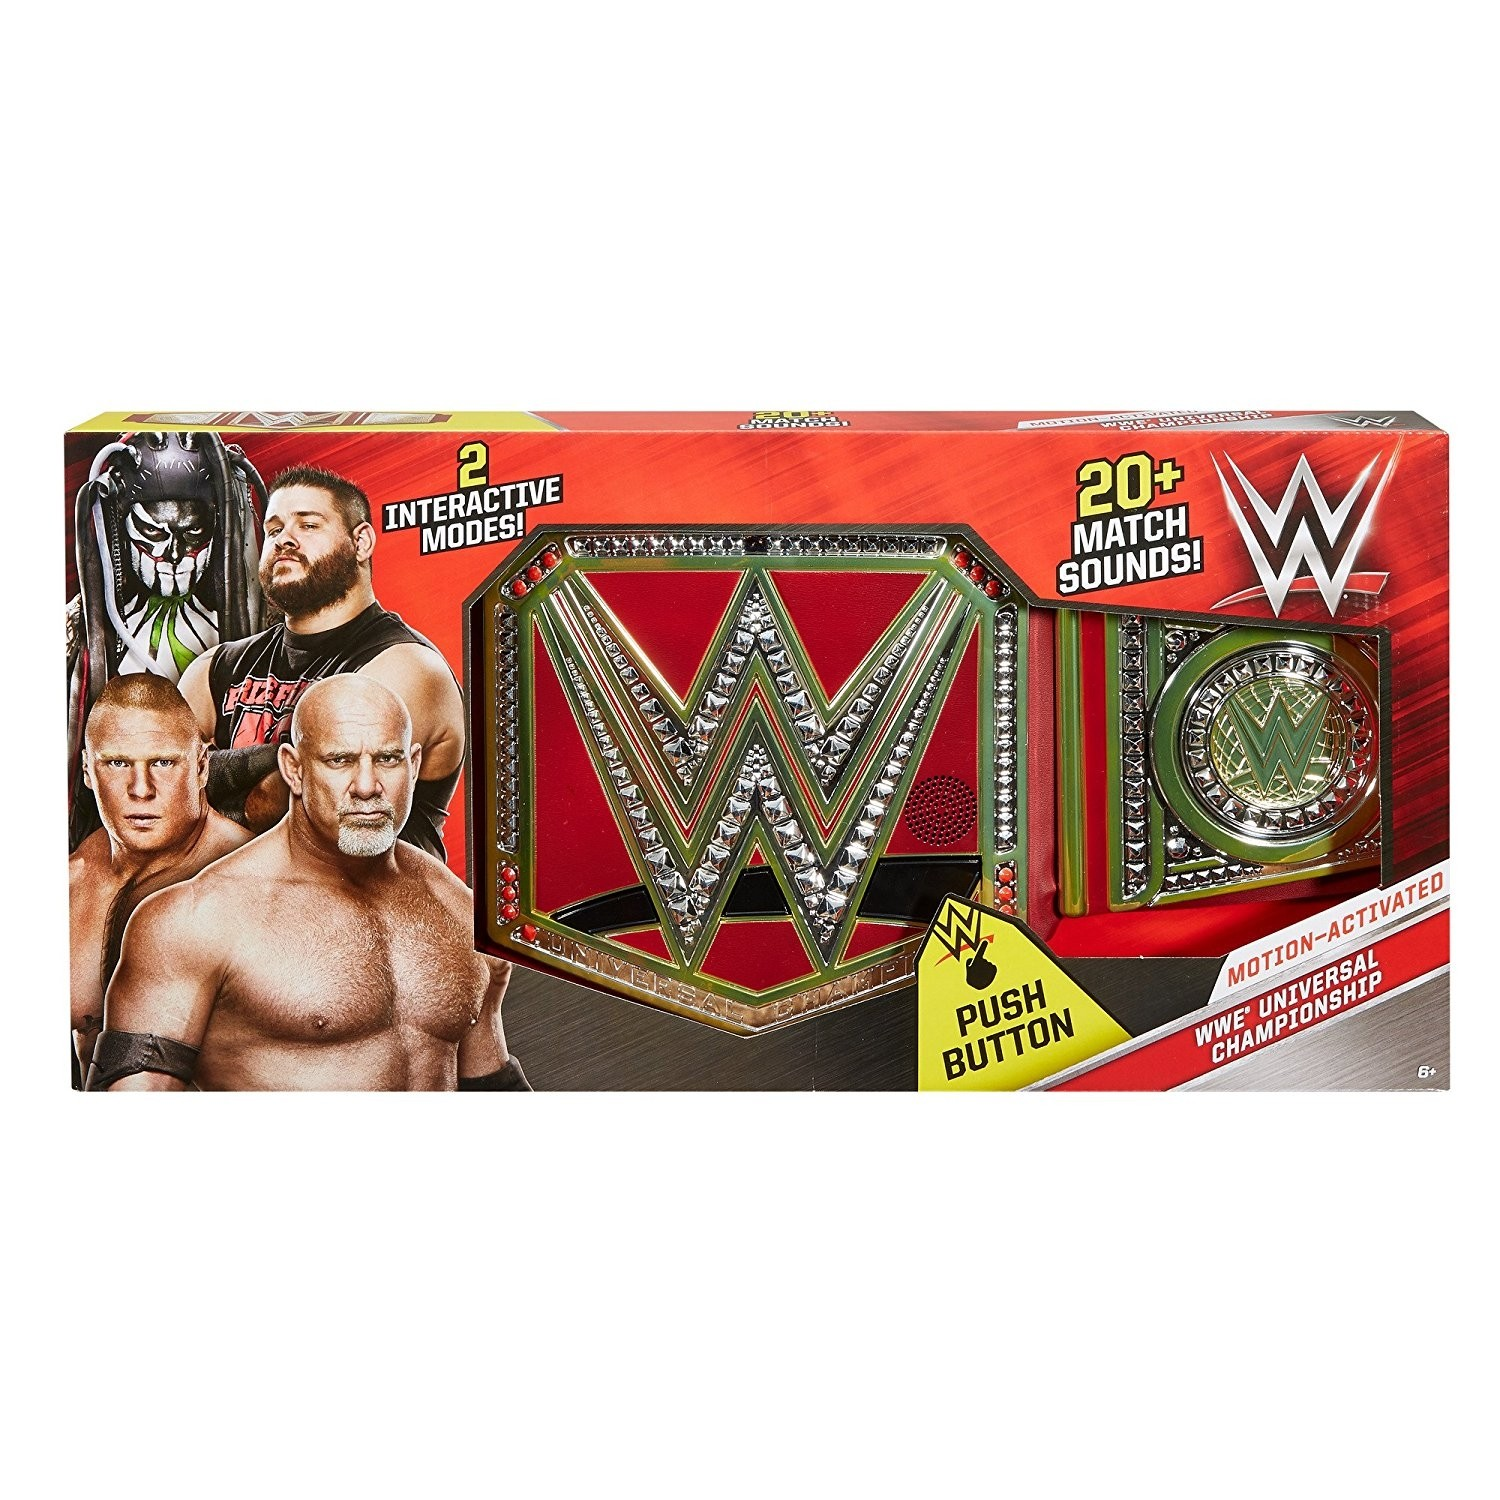 Match Sounds WWE Motion Activated  Universal Championship Belt 20